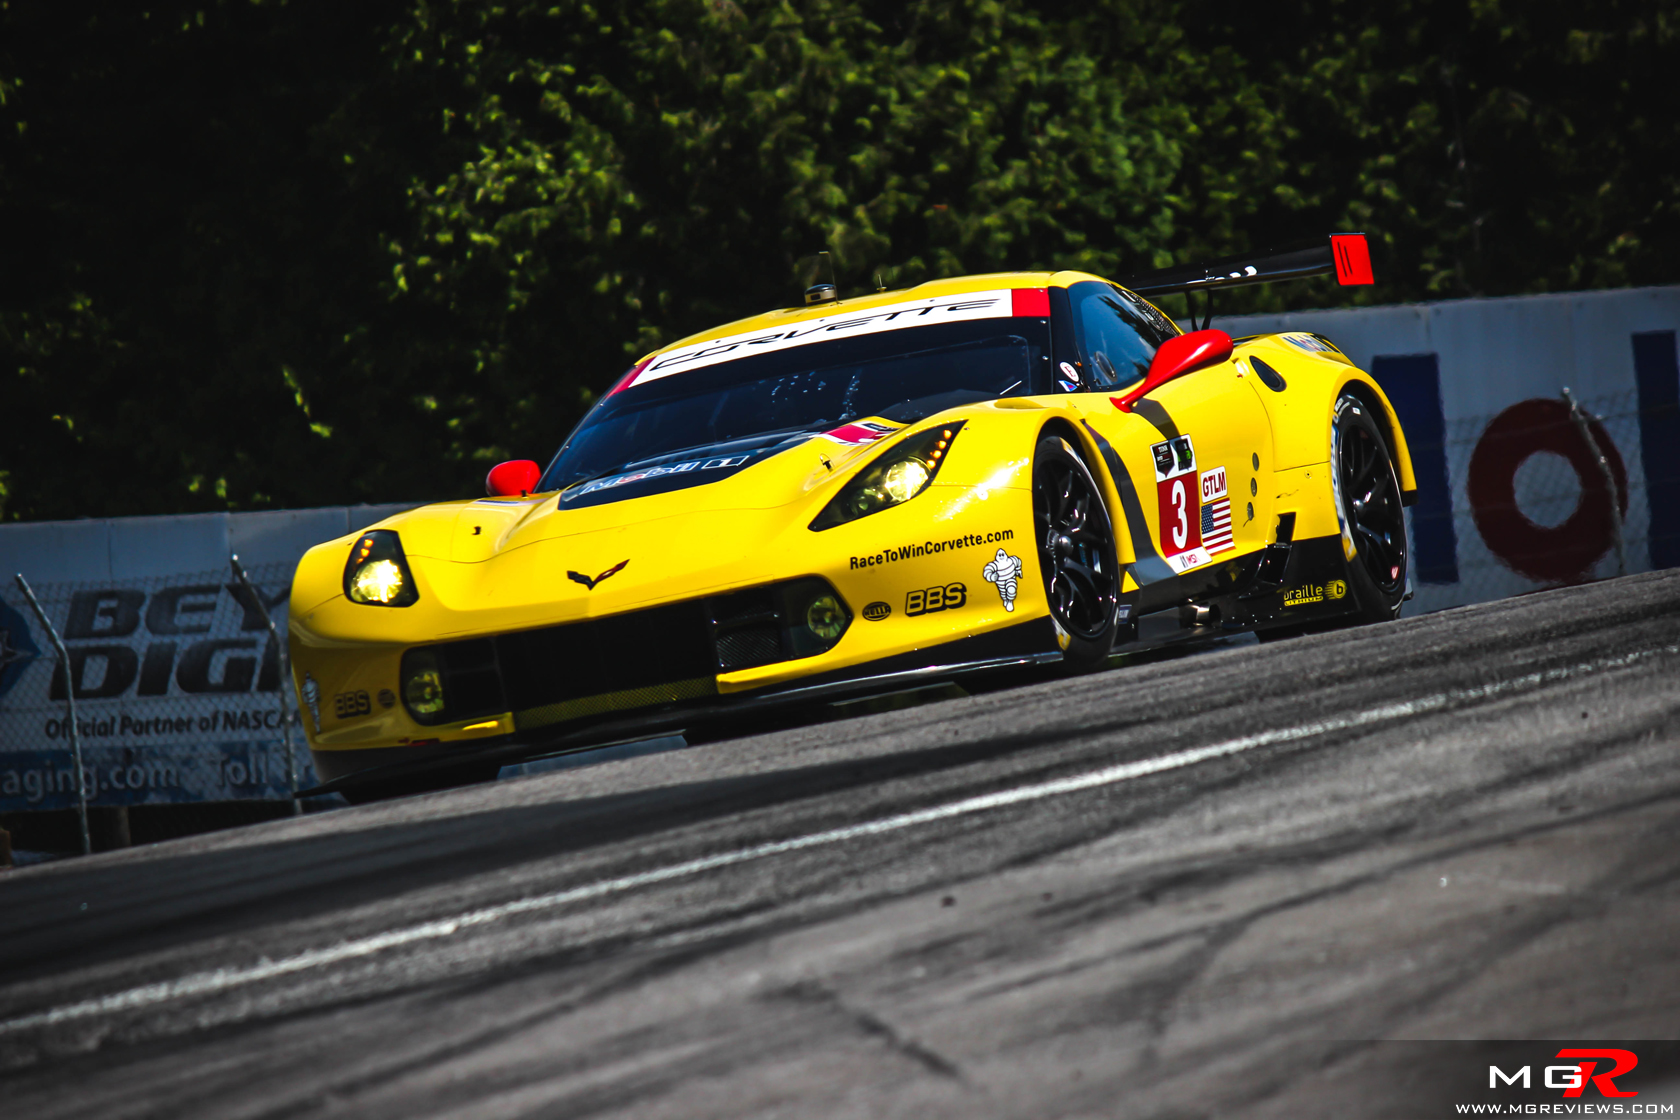 photos 2014 imsa tudor united sports car series part 1 \u2013 practice2014 tudor united sports car series 40 copy